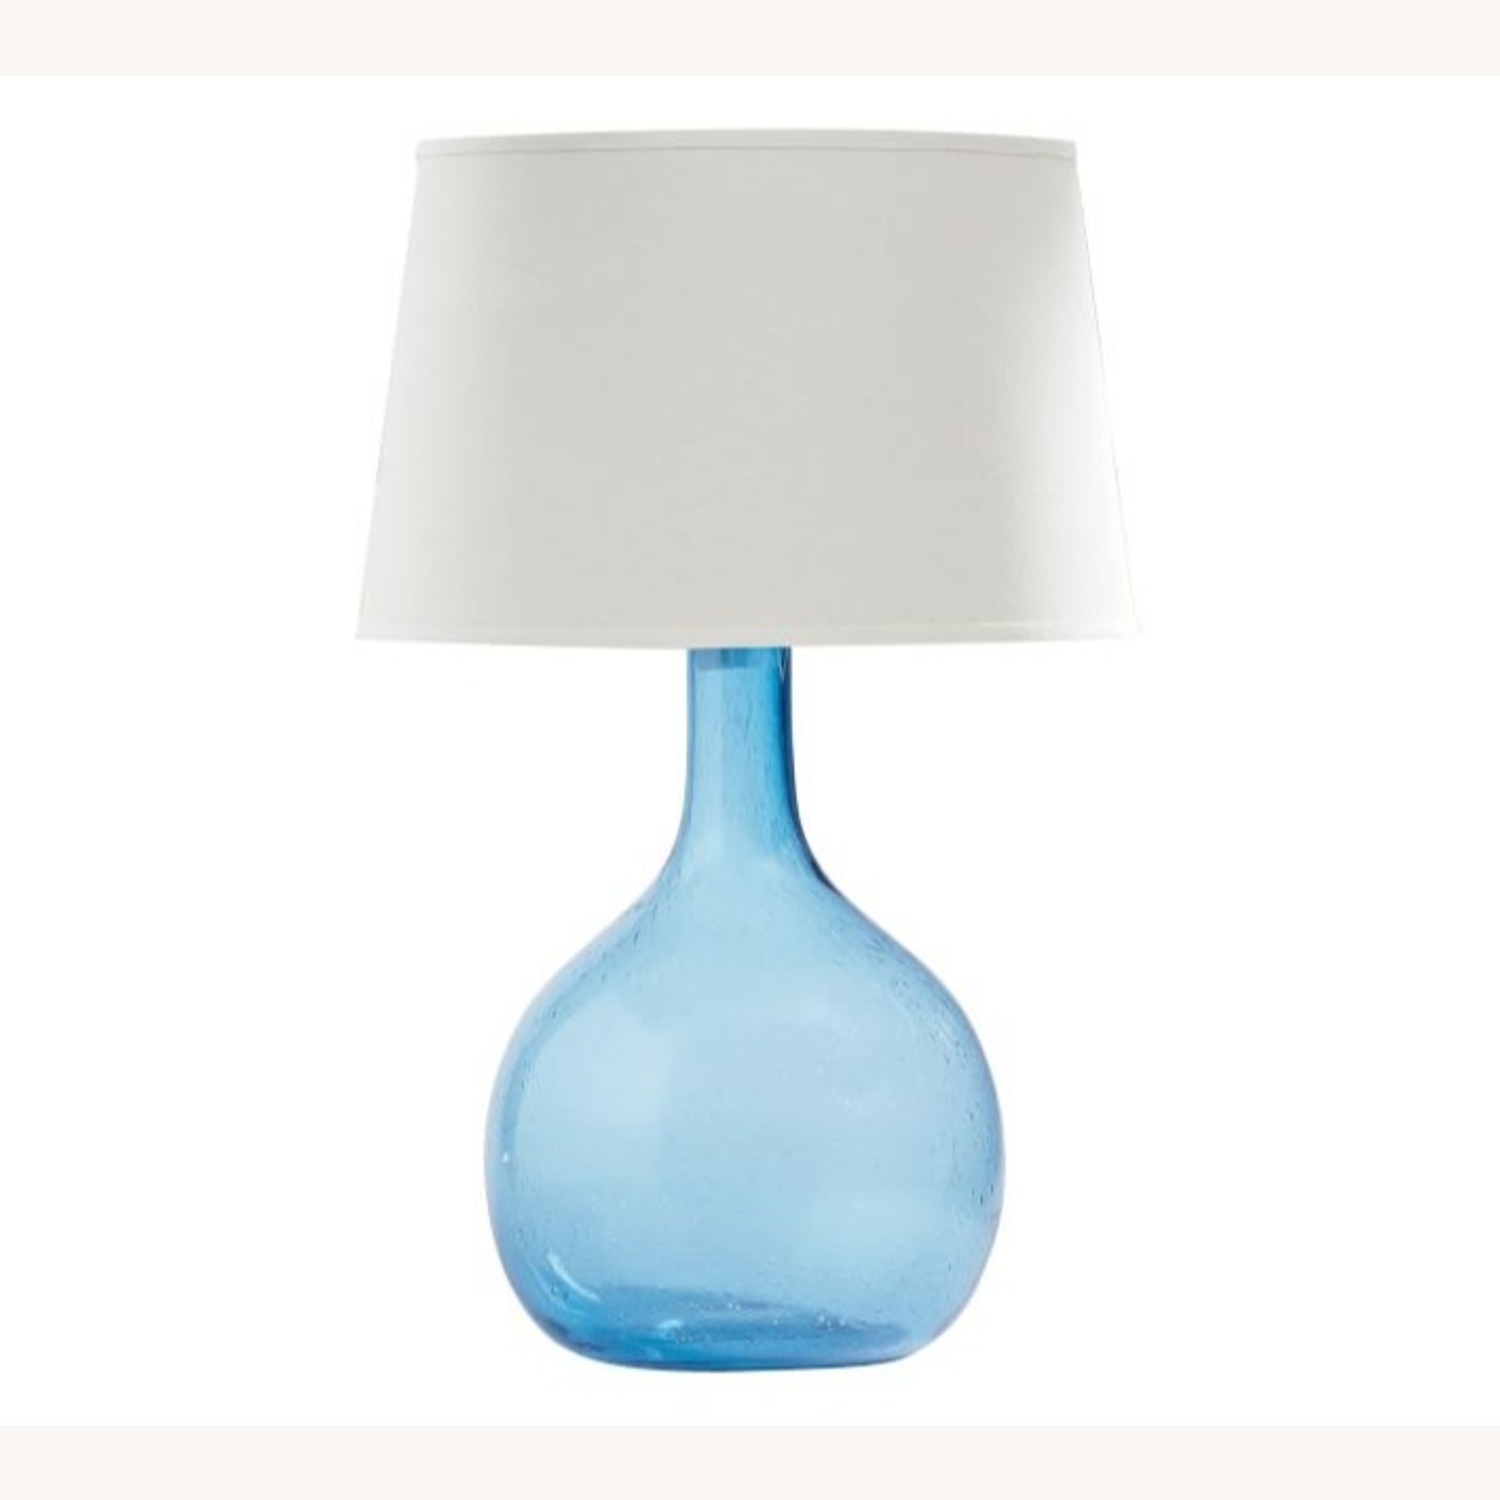 Pottery Barn Eva Colored Glass Table Lamps (blue) - image-1